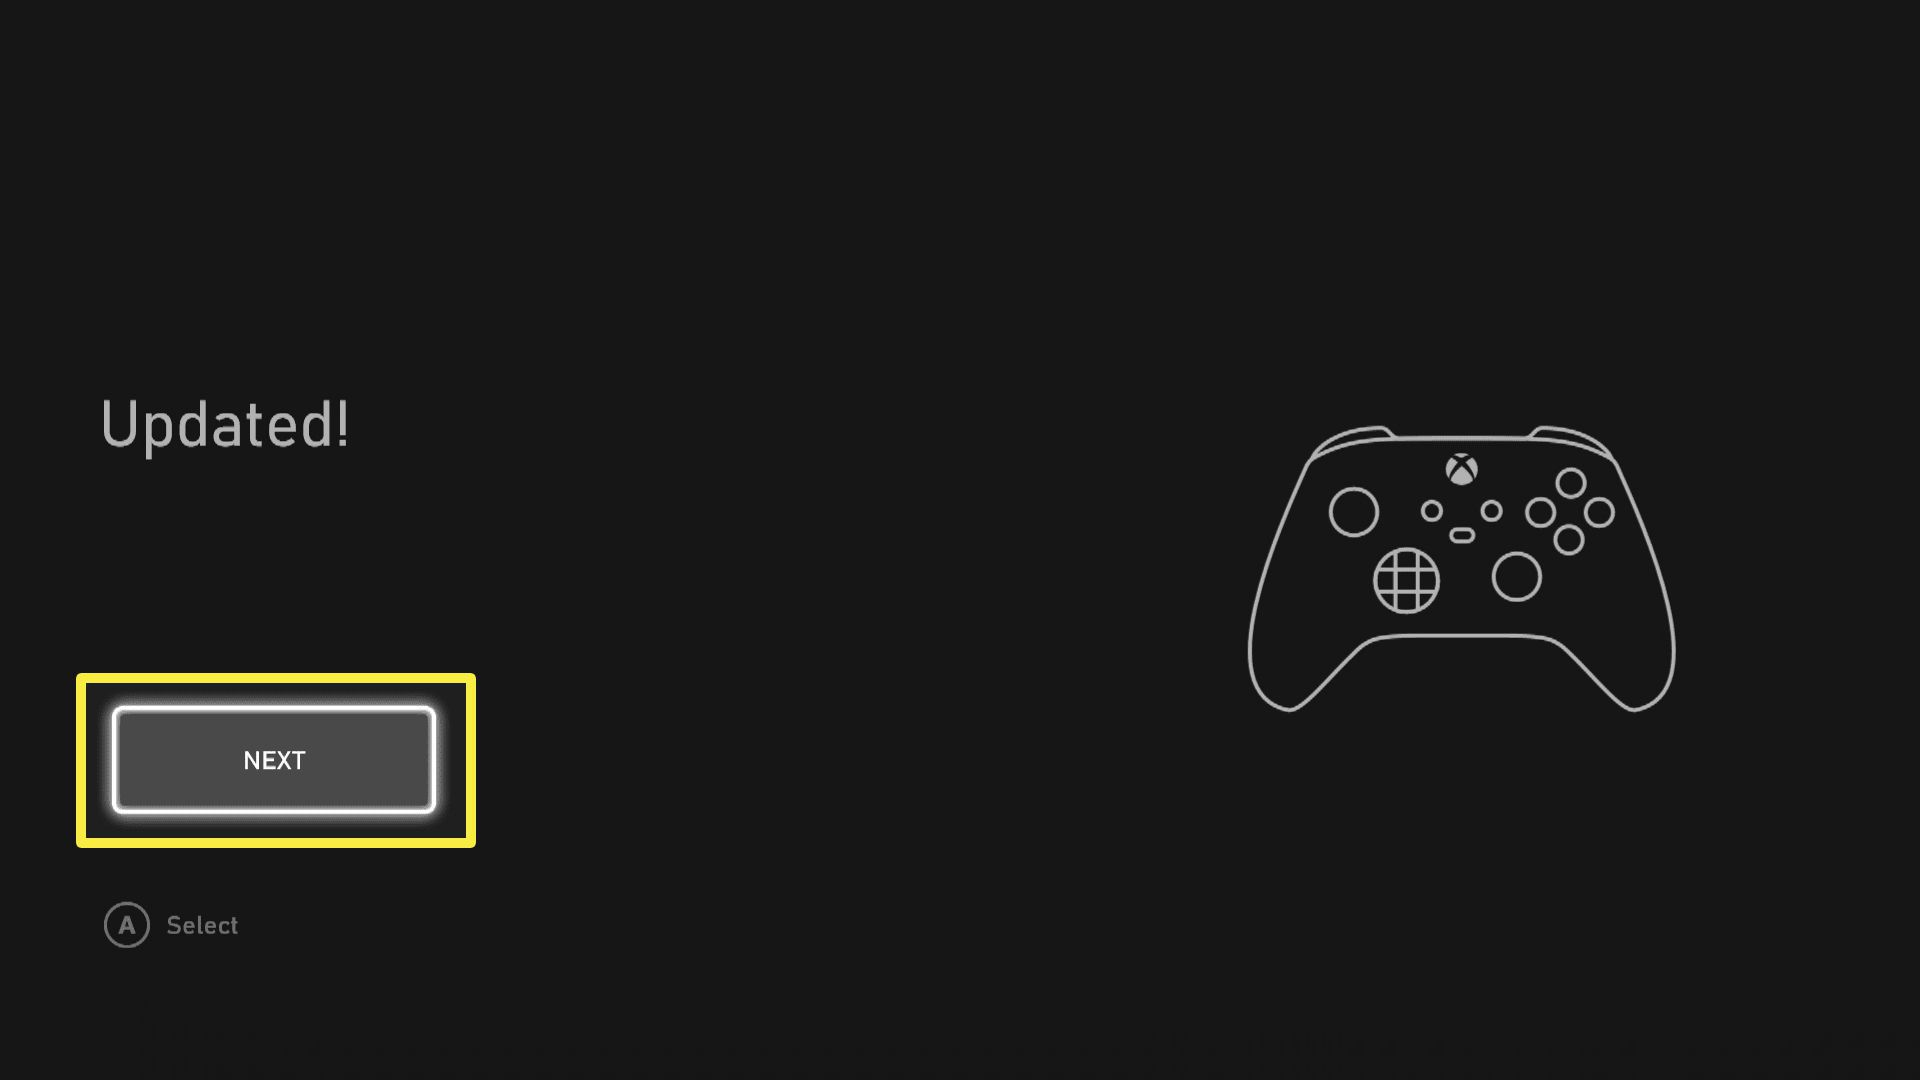 The Xbox Controller Updated dialogue box